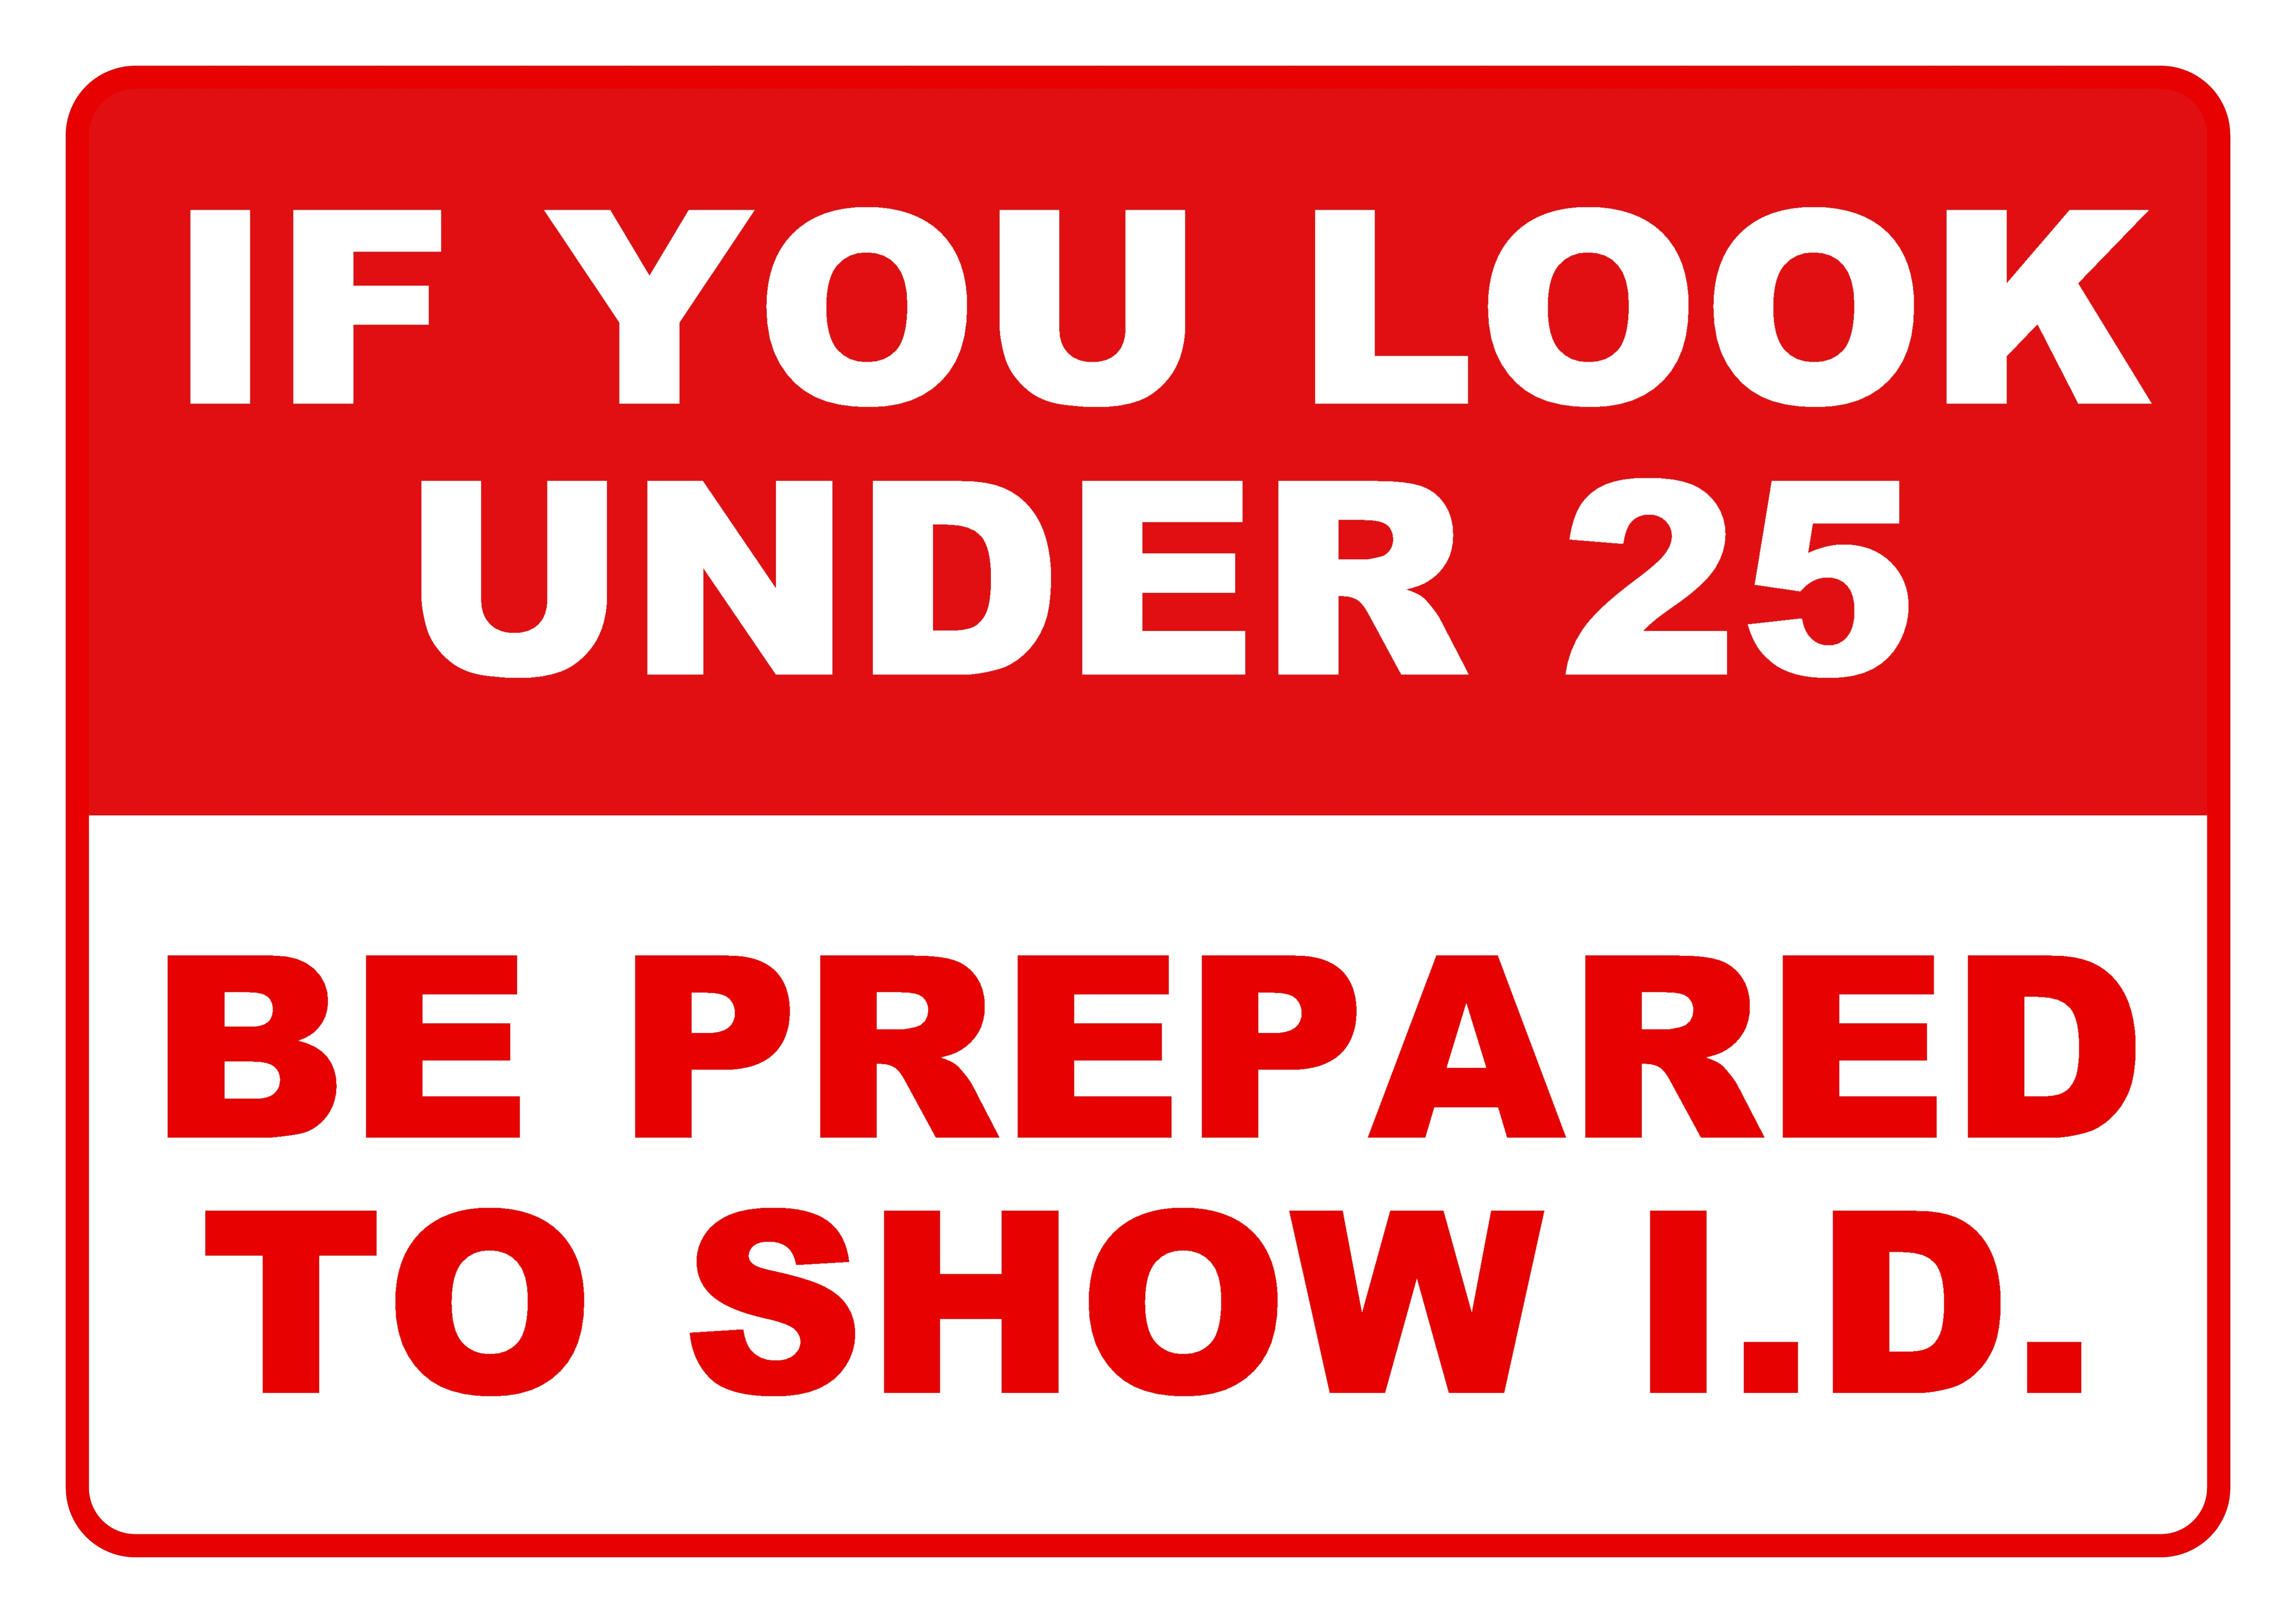 Under 25 Show ID, Template, Sign, Printable, Id, HQ Photo